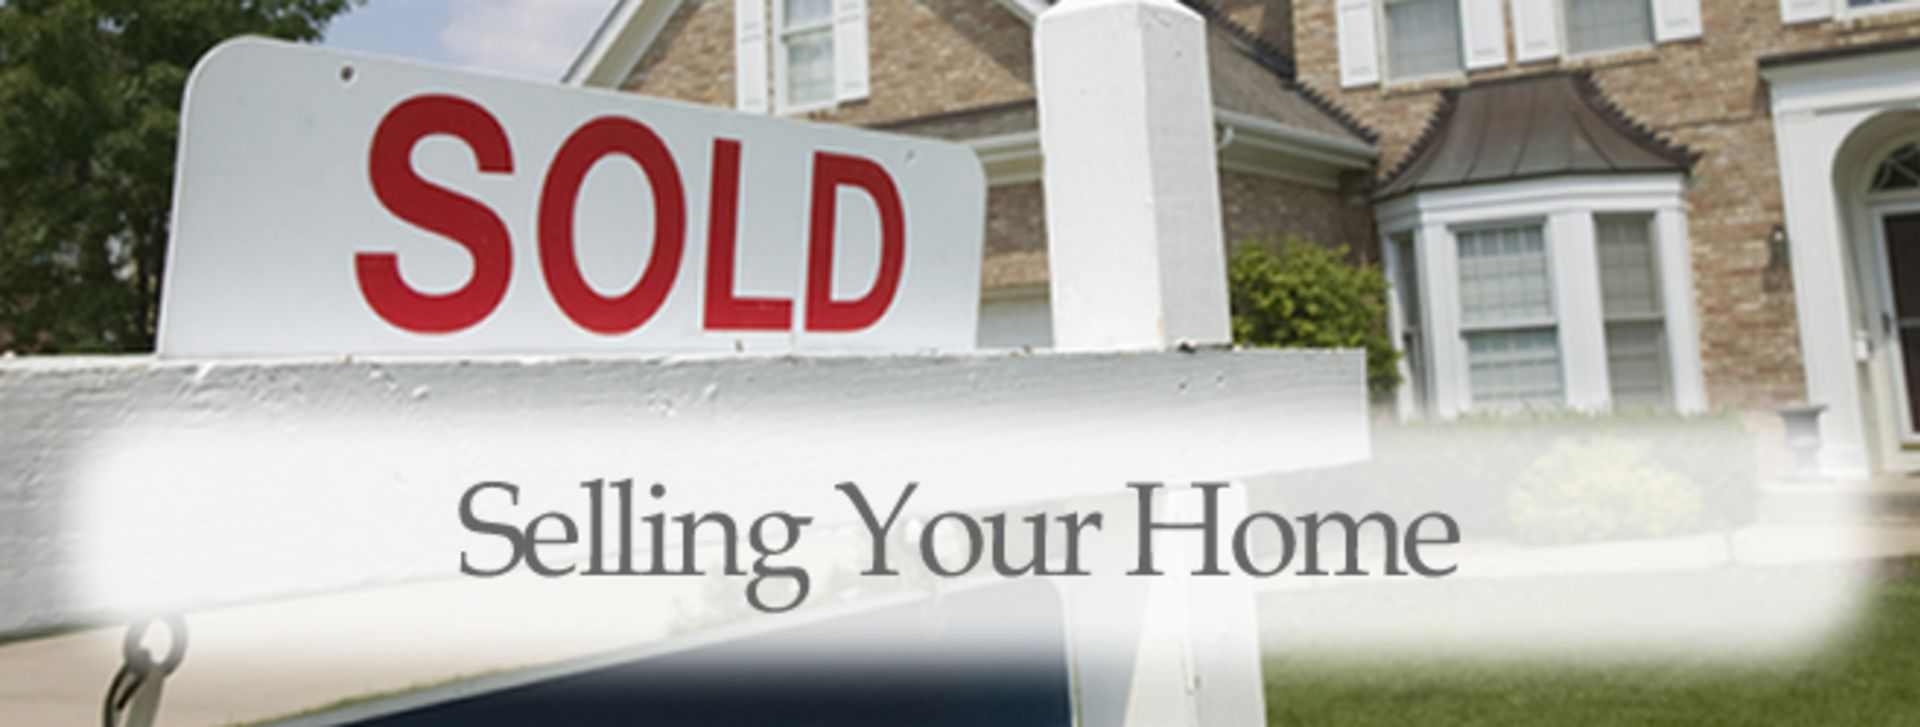 "SELLERS: PRICING YOUR HOME WHEN LISTING ""FOR SALE"""